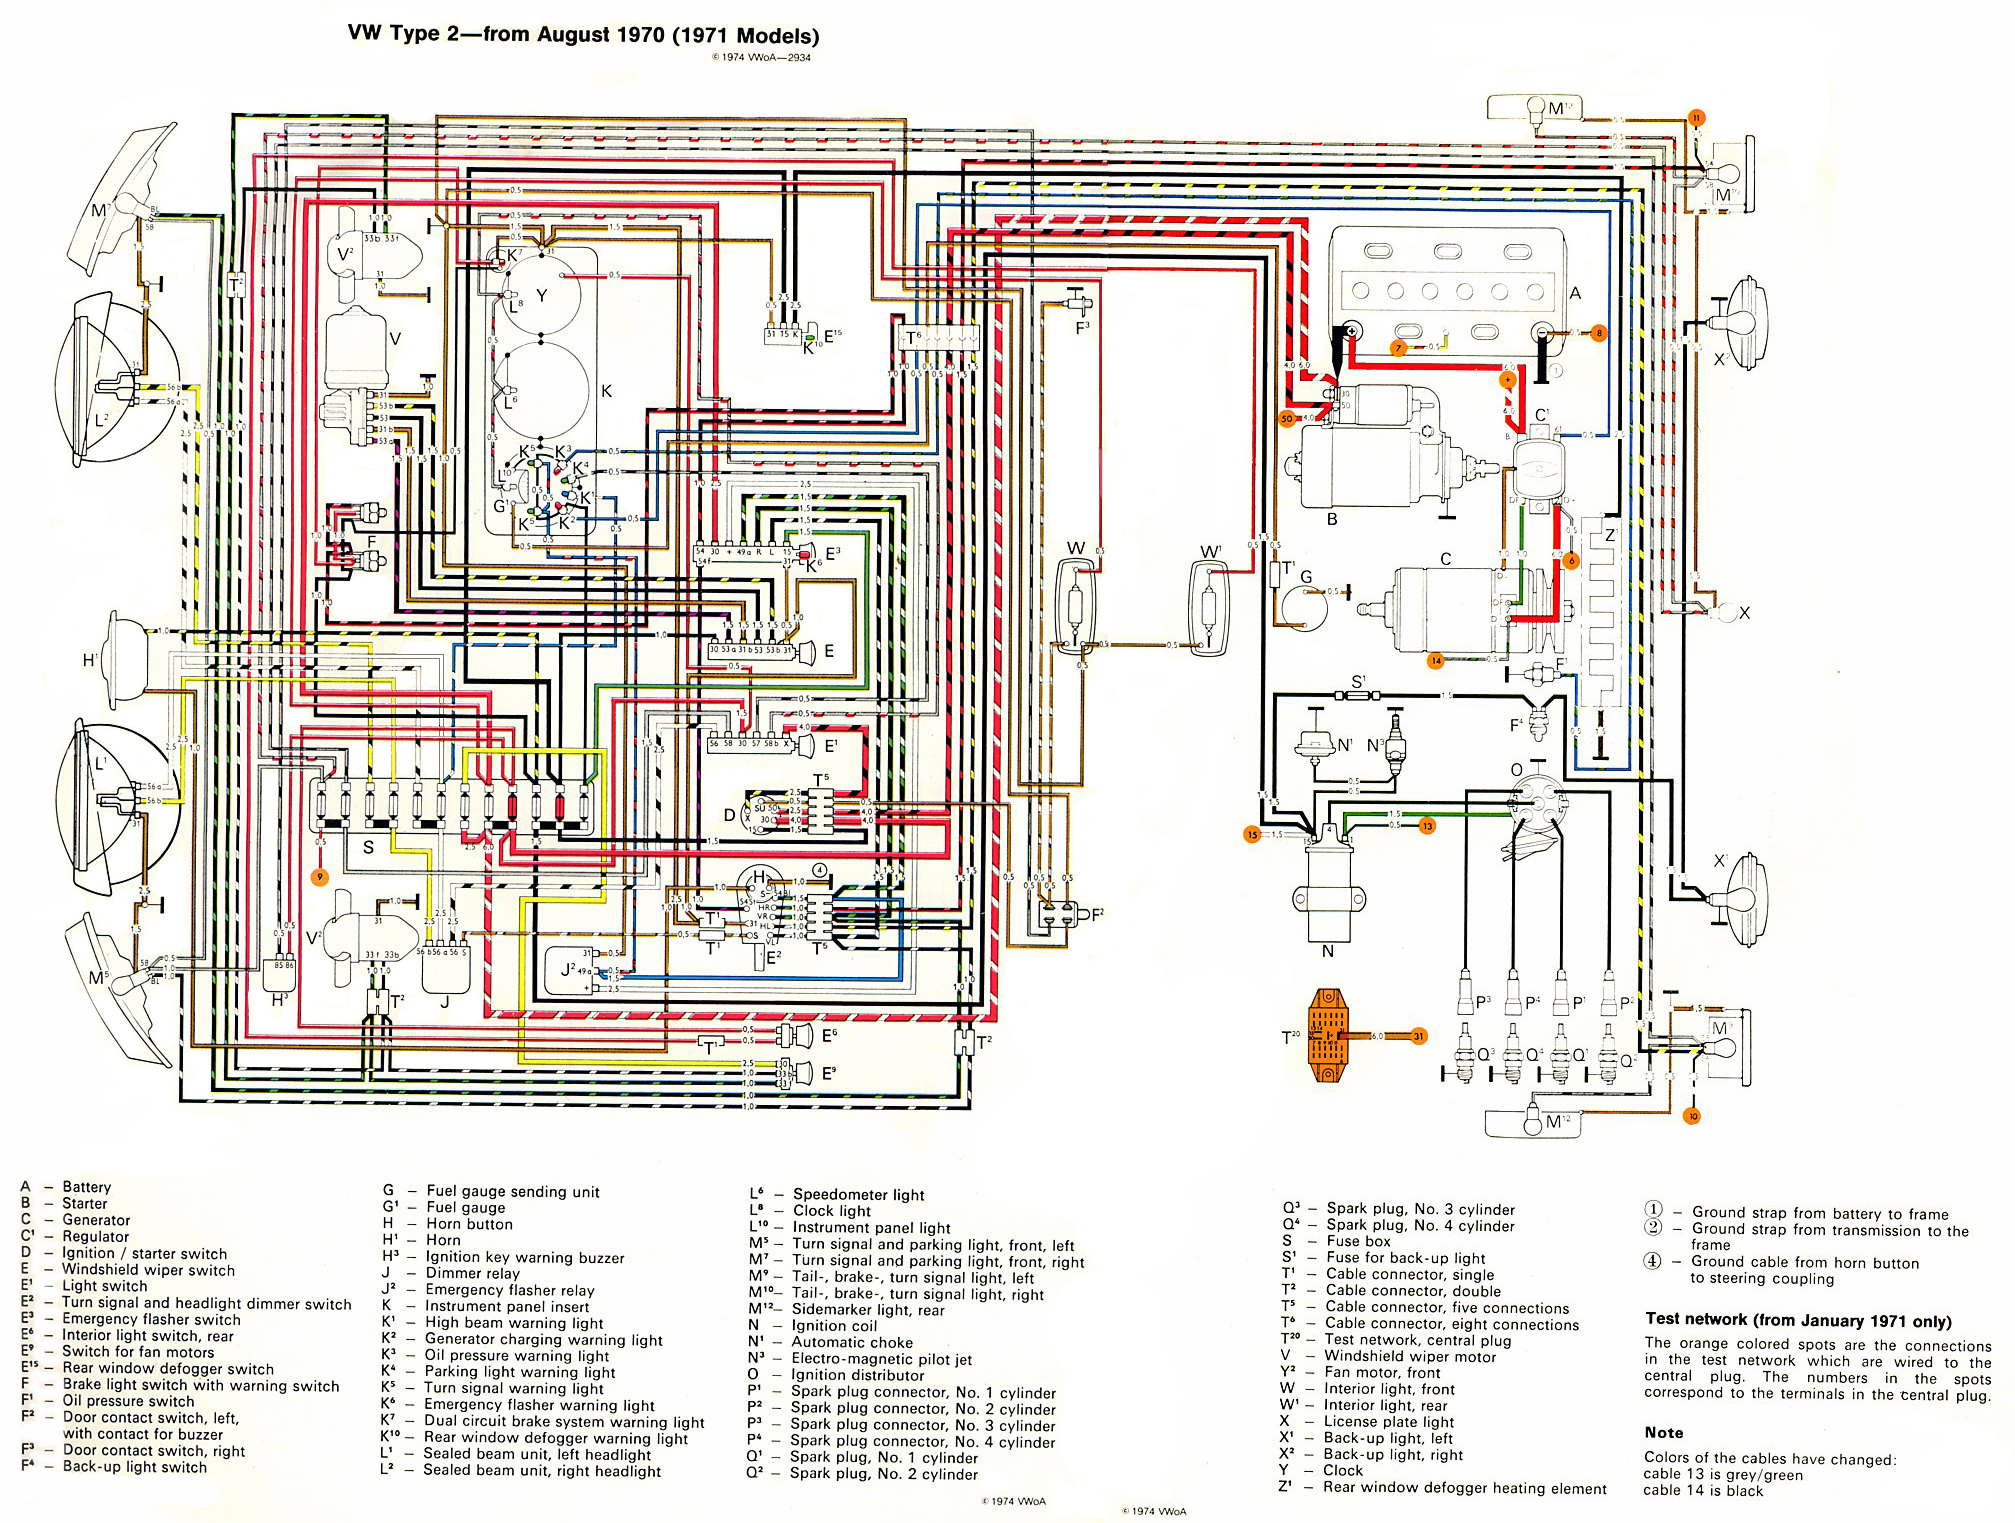 baybus_71_fixed vw t4 horn wiring diagram efcaviation com vw t4 fuse box wiring diagram at crackthecode.co